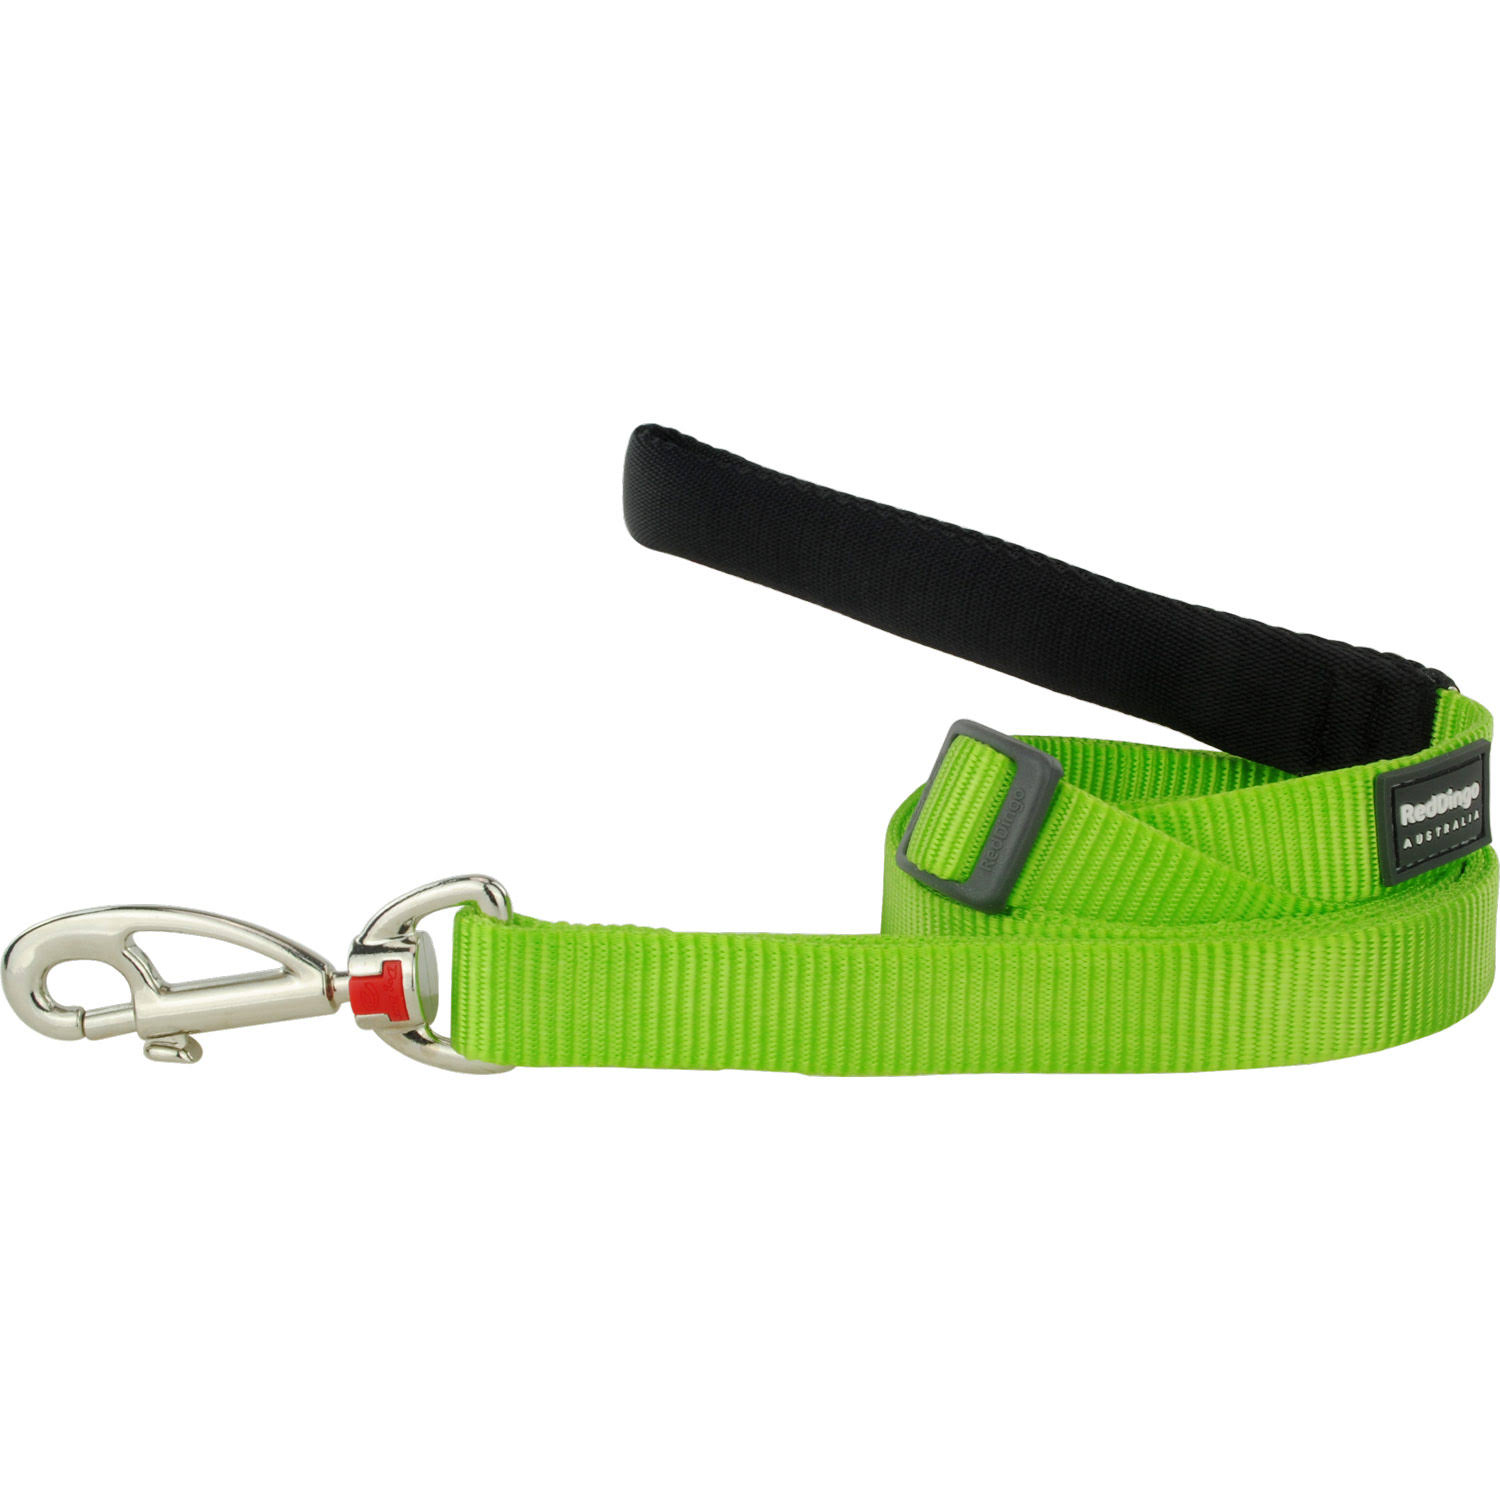 Red Dingo Classic Dog Leash - Lime Green, 15mm x 1.8m